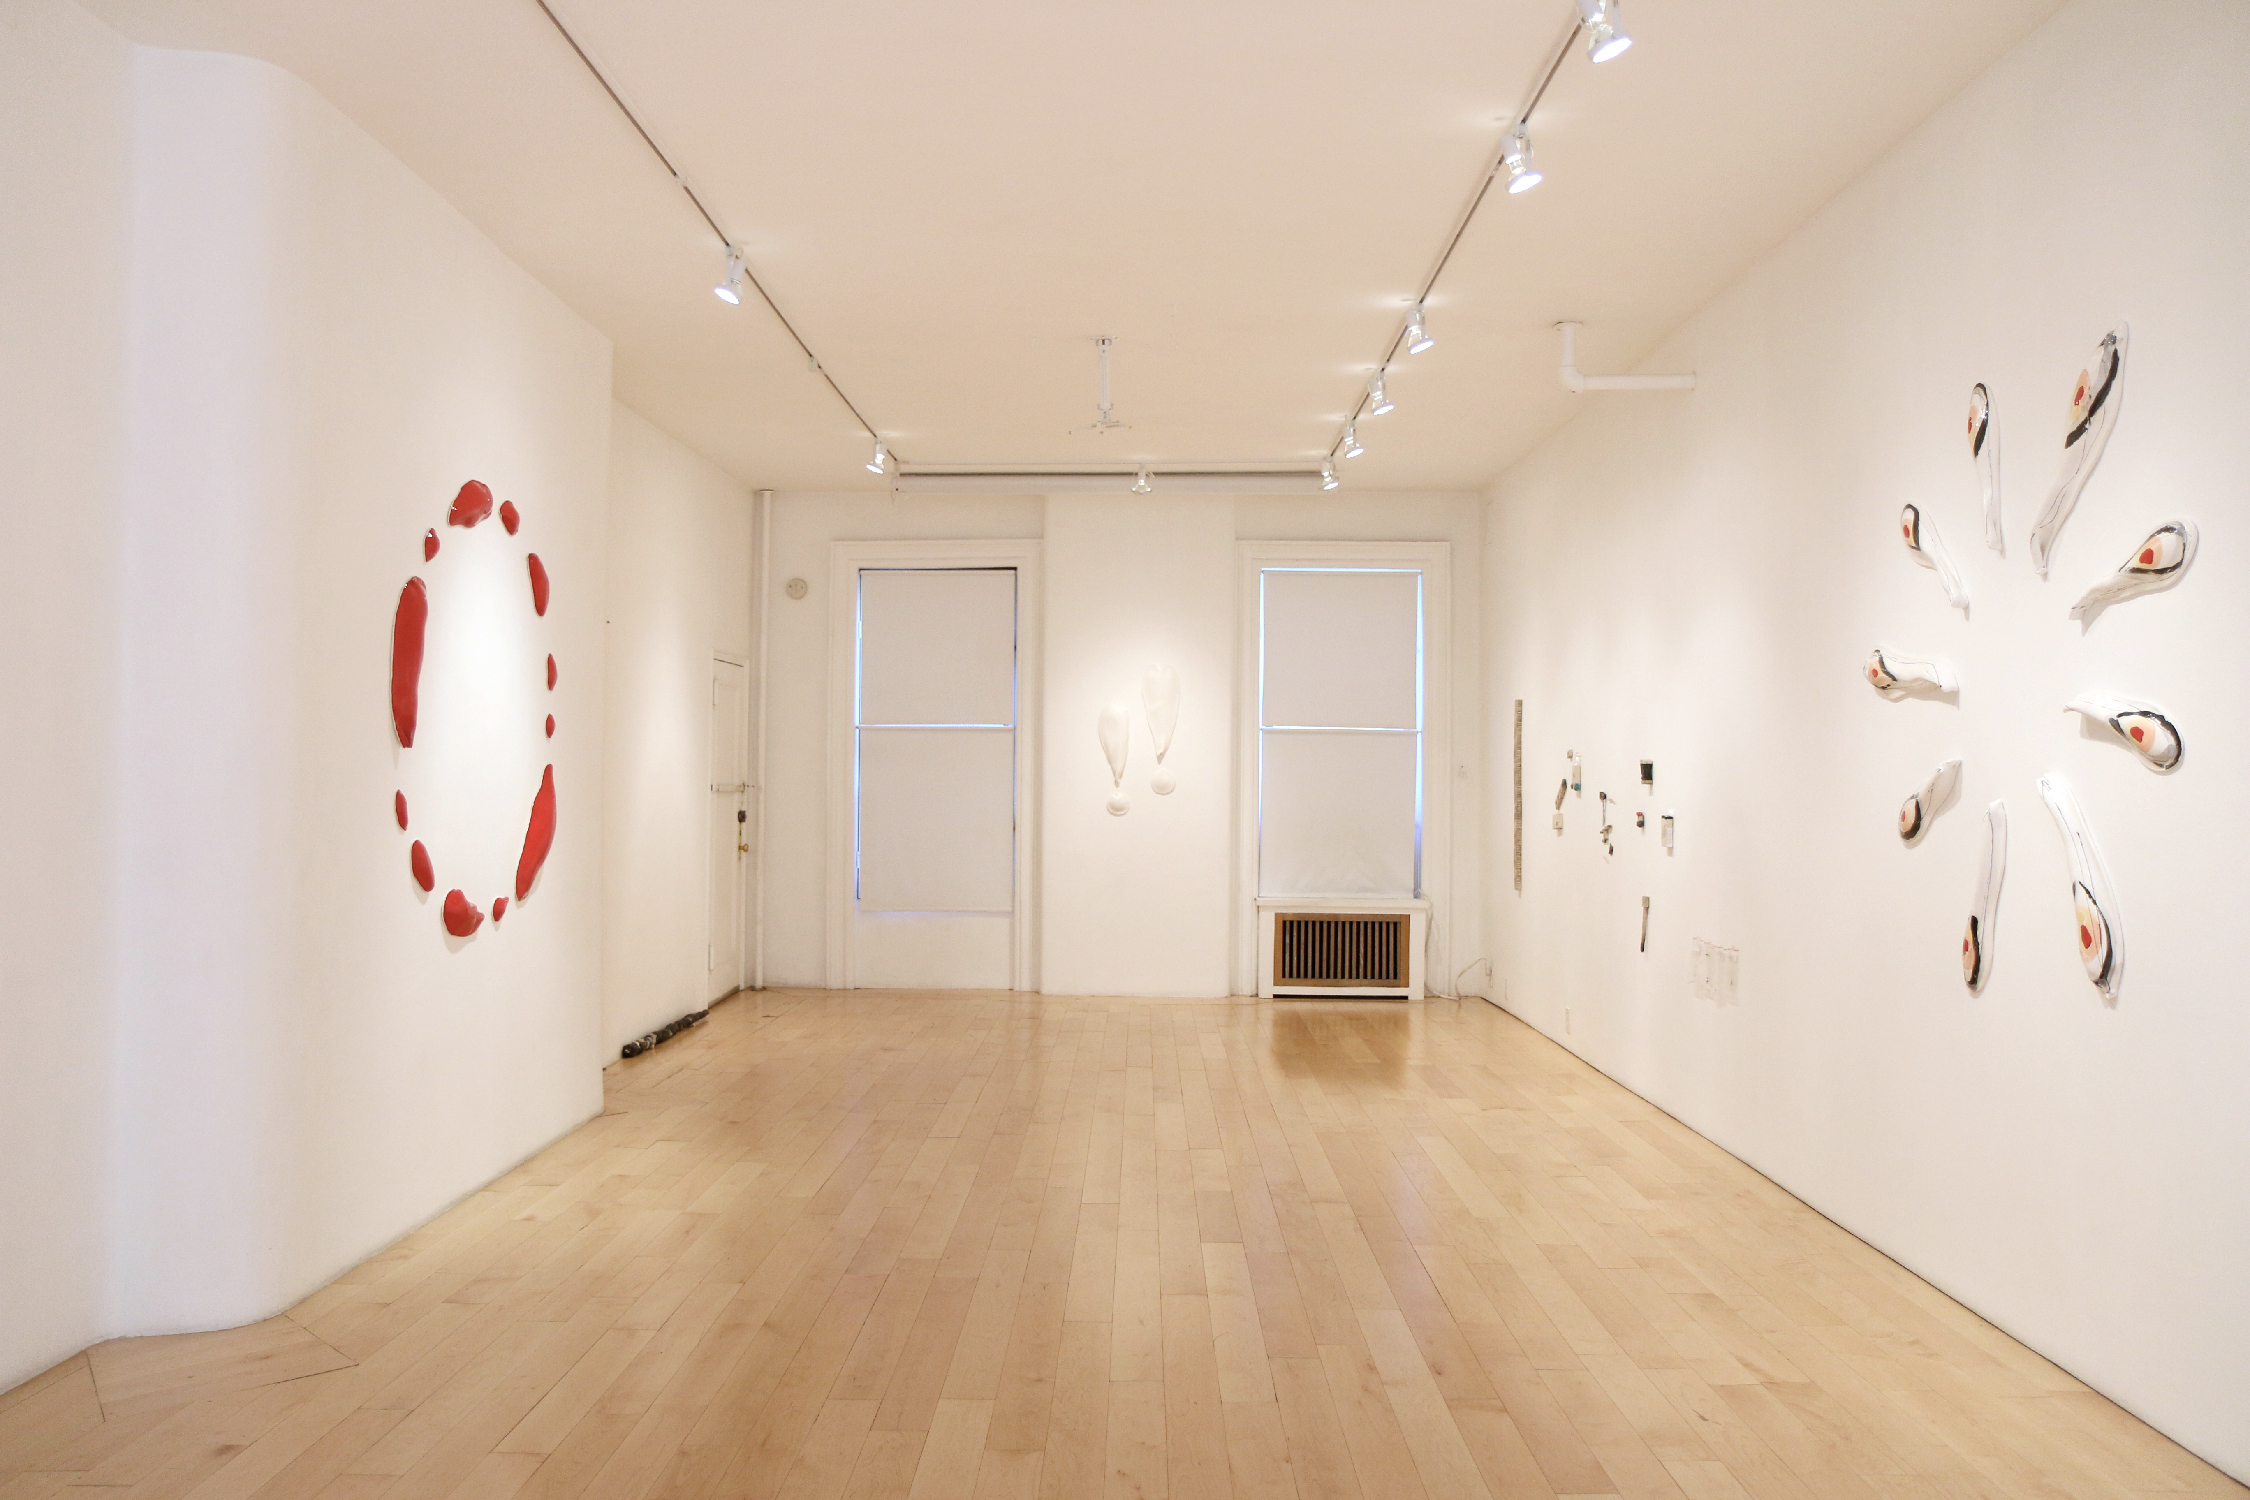 Installation images: walls 2 / 3 / 4 (from right to left)